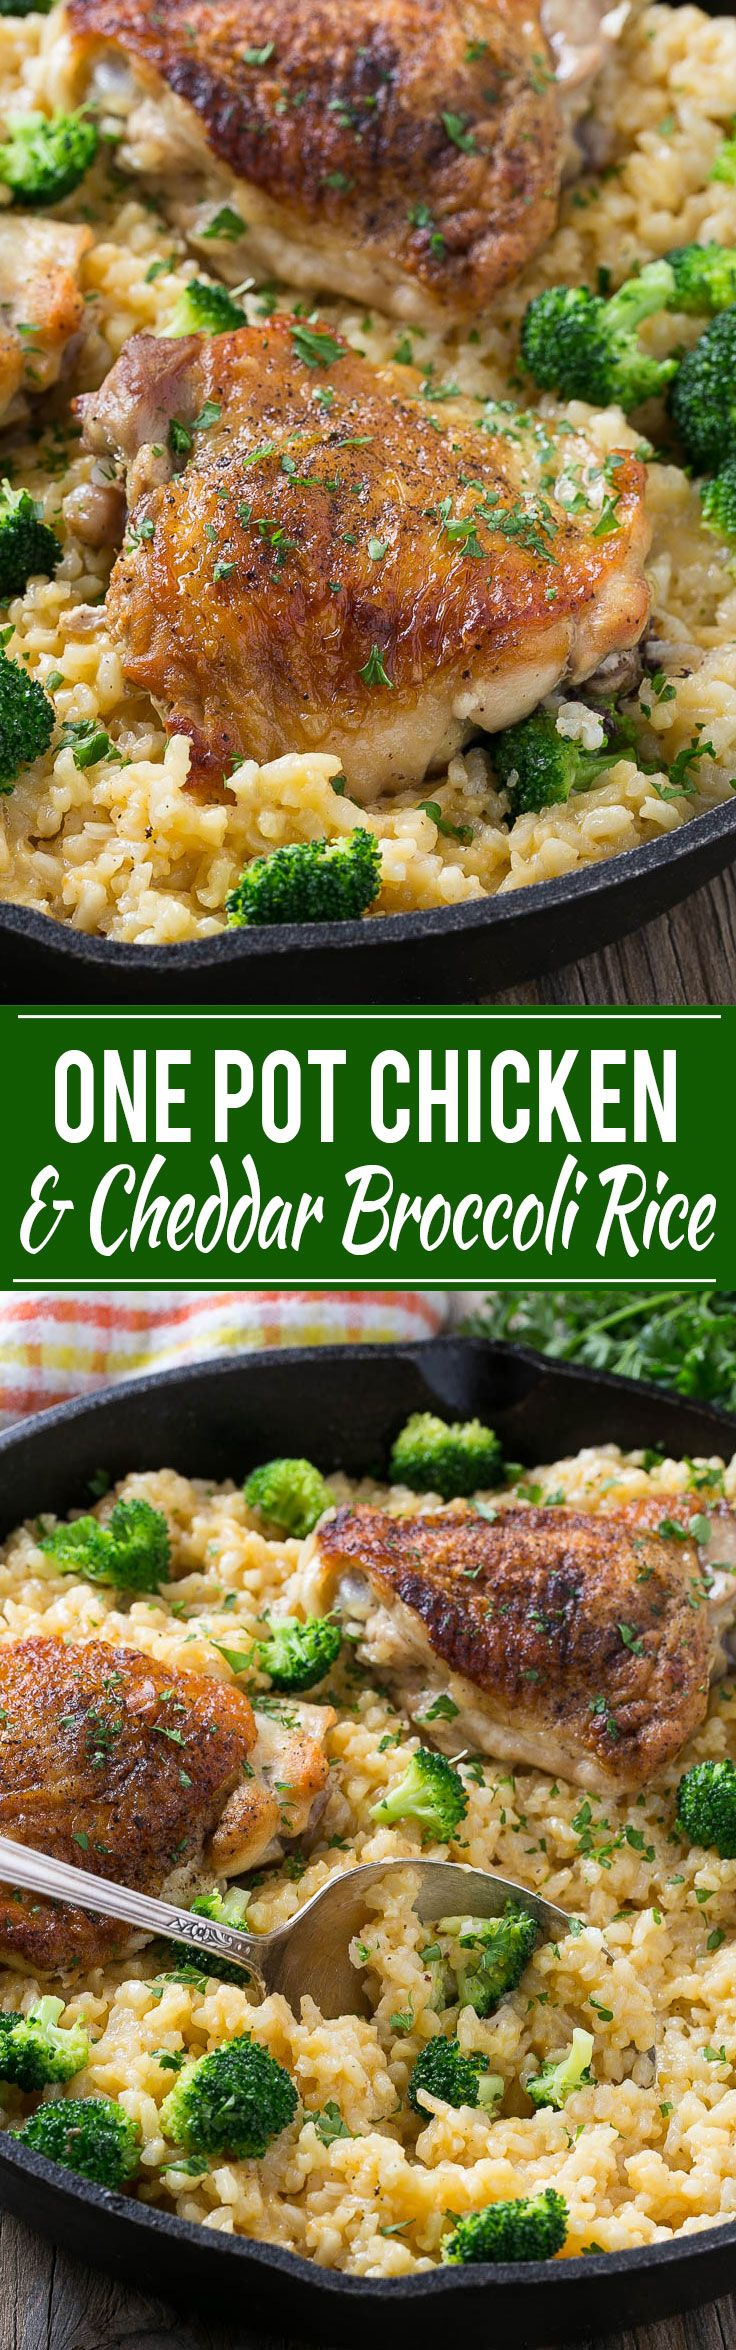 This One Pot Chicken With Cheddar Broccoli Rice Combines -3133